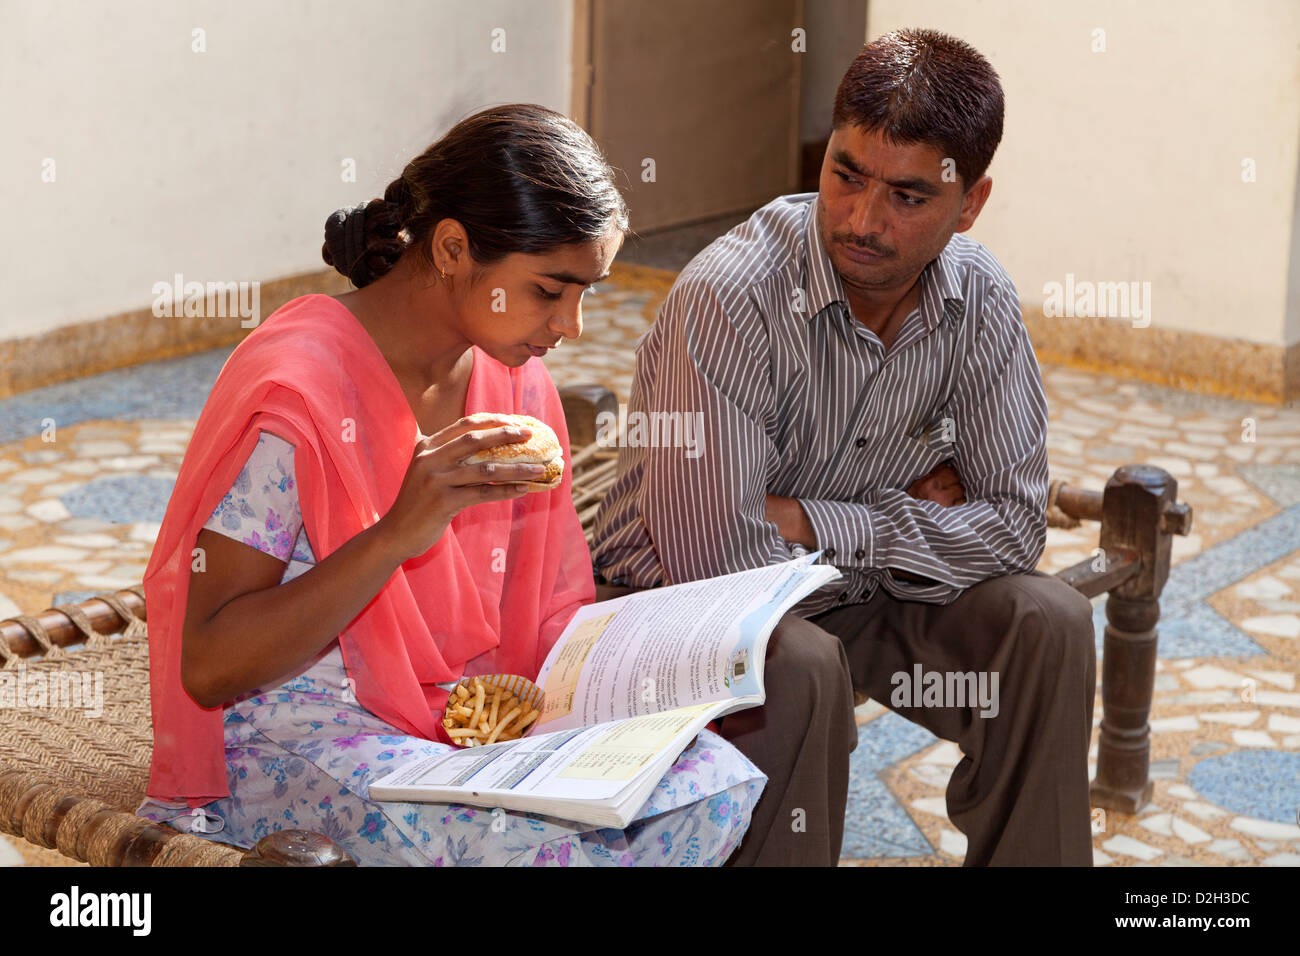 India, uttar Pradesh, Agra Indian girl eating western style fast food whilst studying and being watched disapprovingly - Stock Image